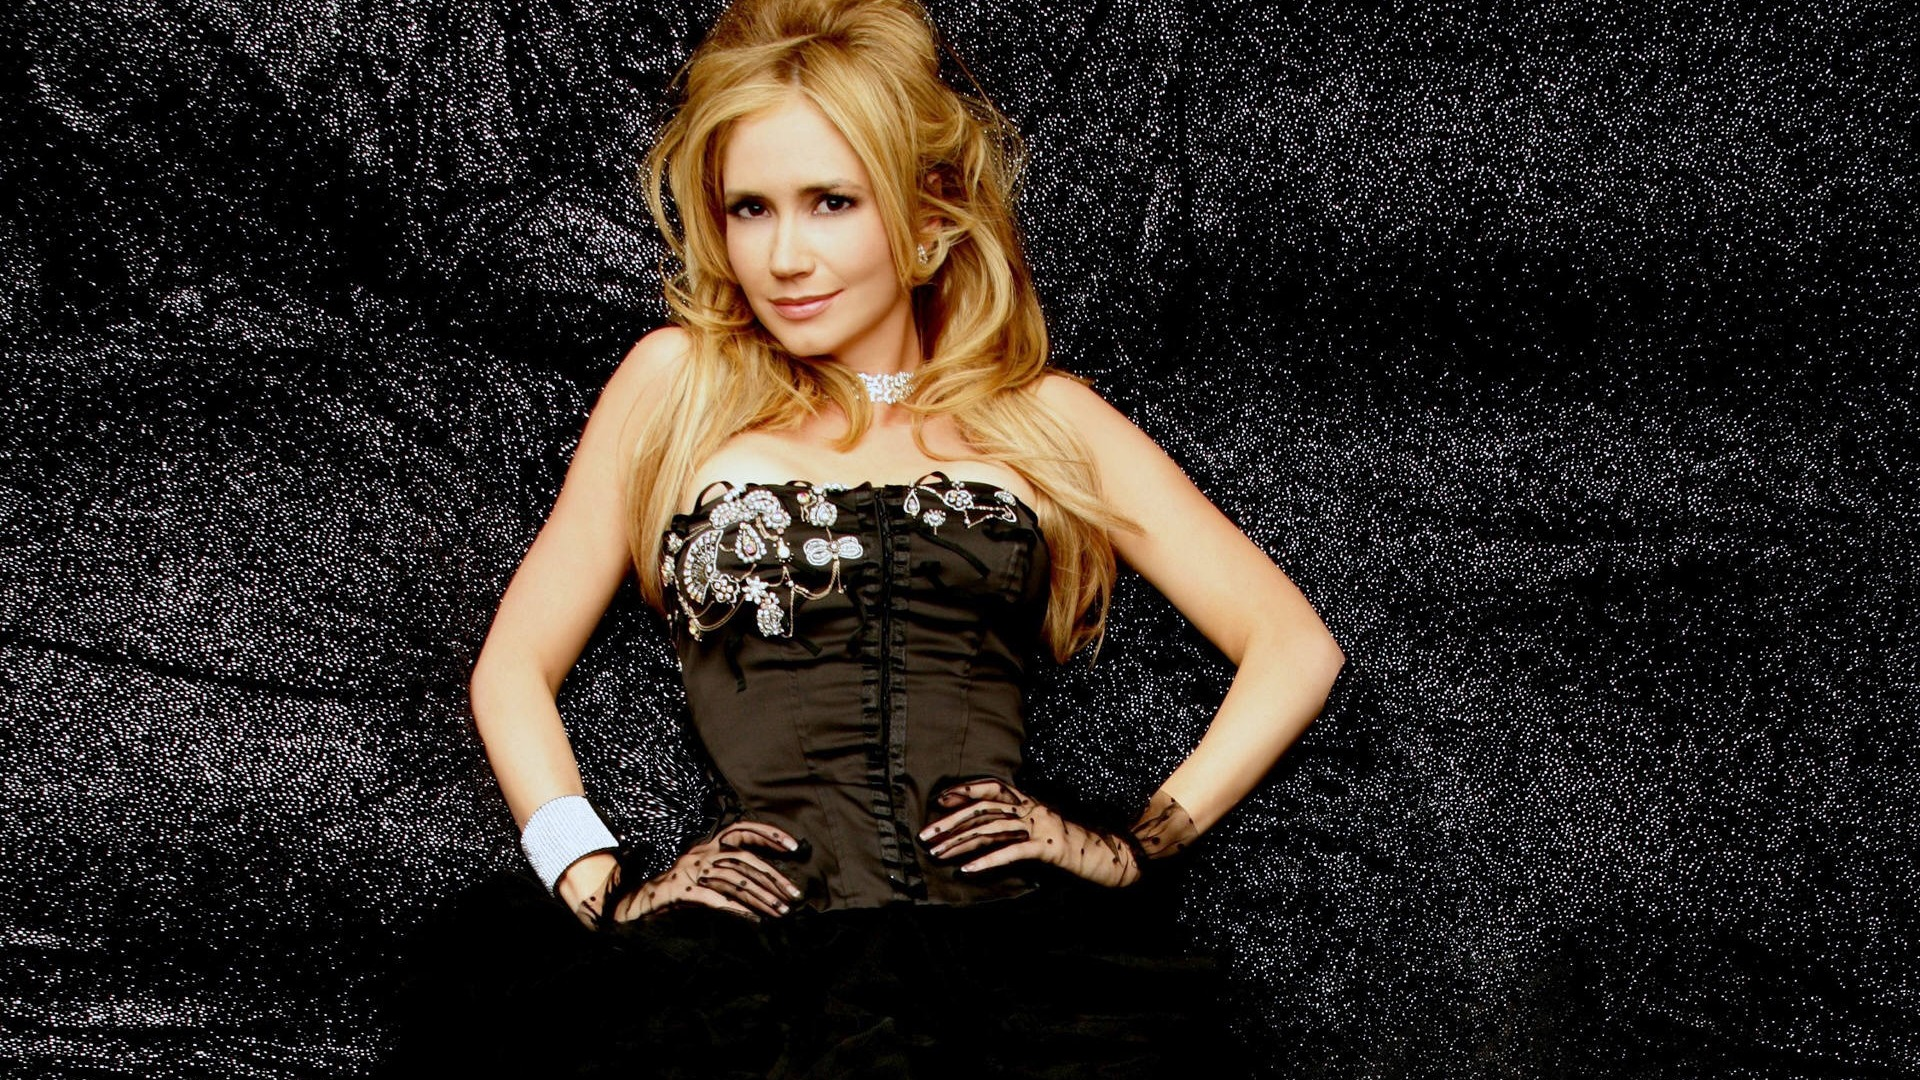 Ashley Jones #009 - 1920x1080 Wallpapers Pictures Photos Images